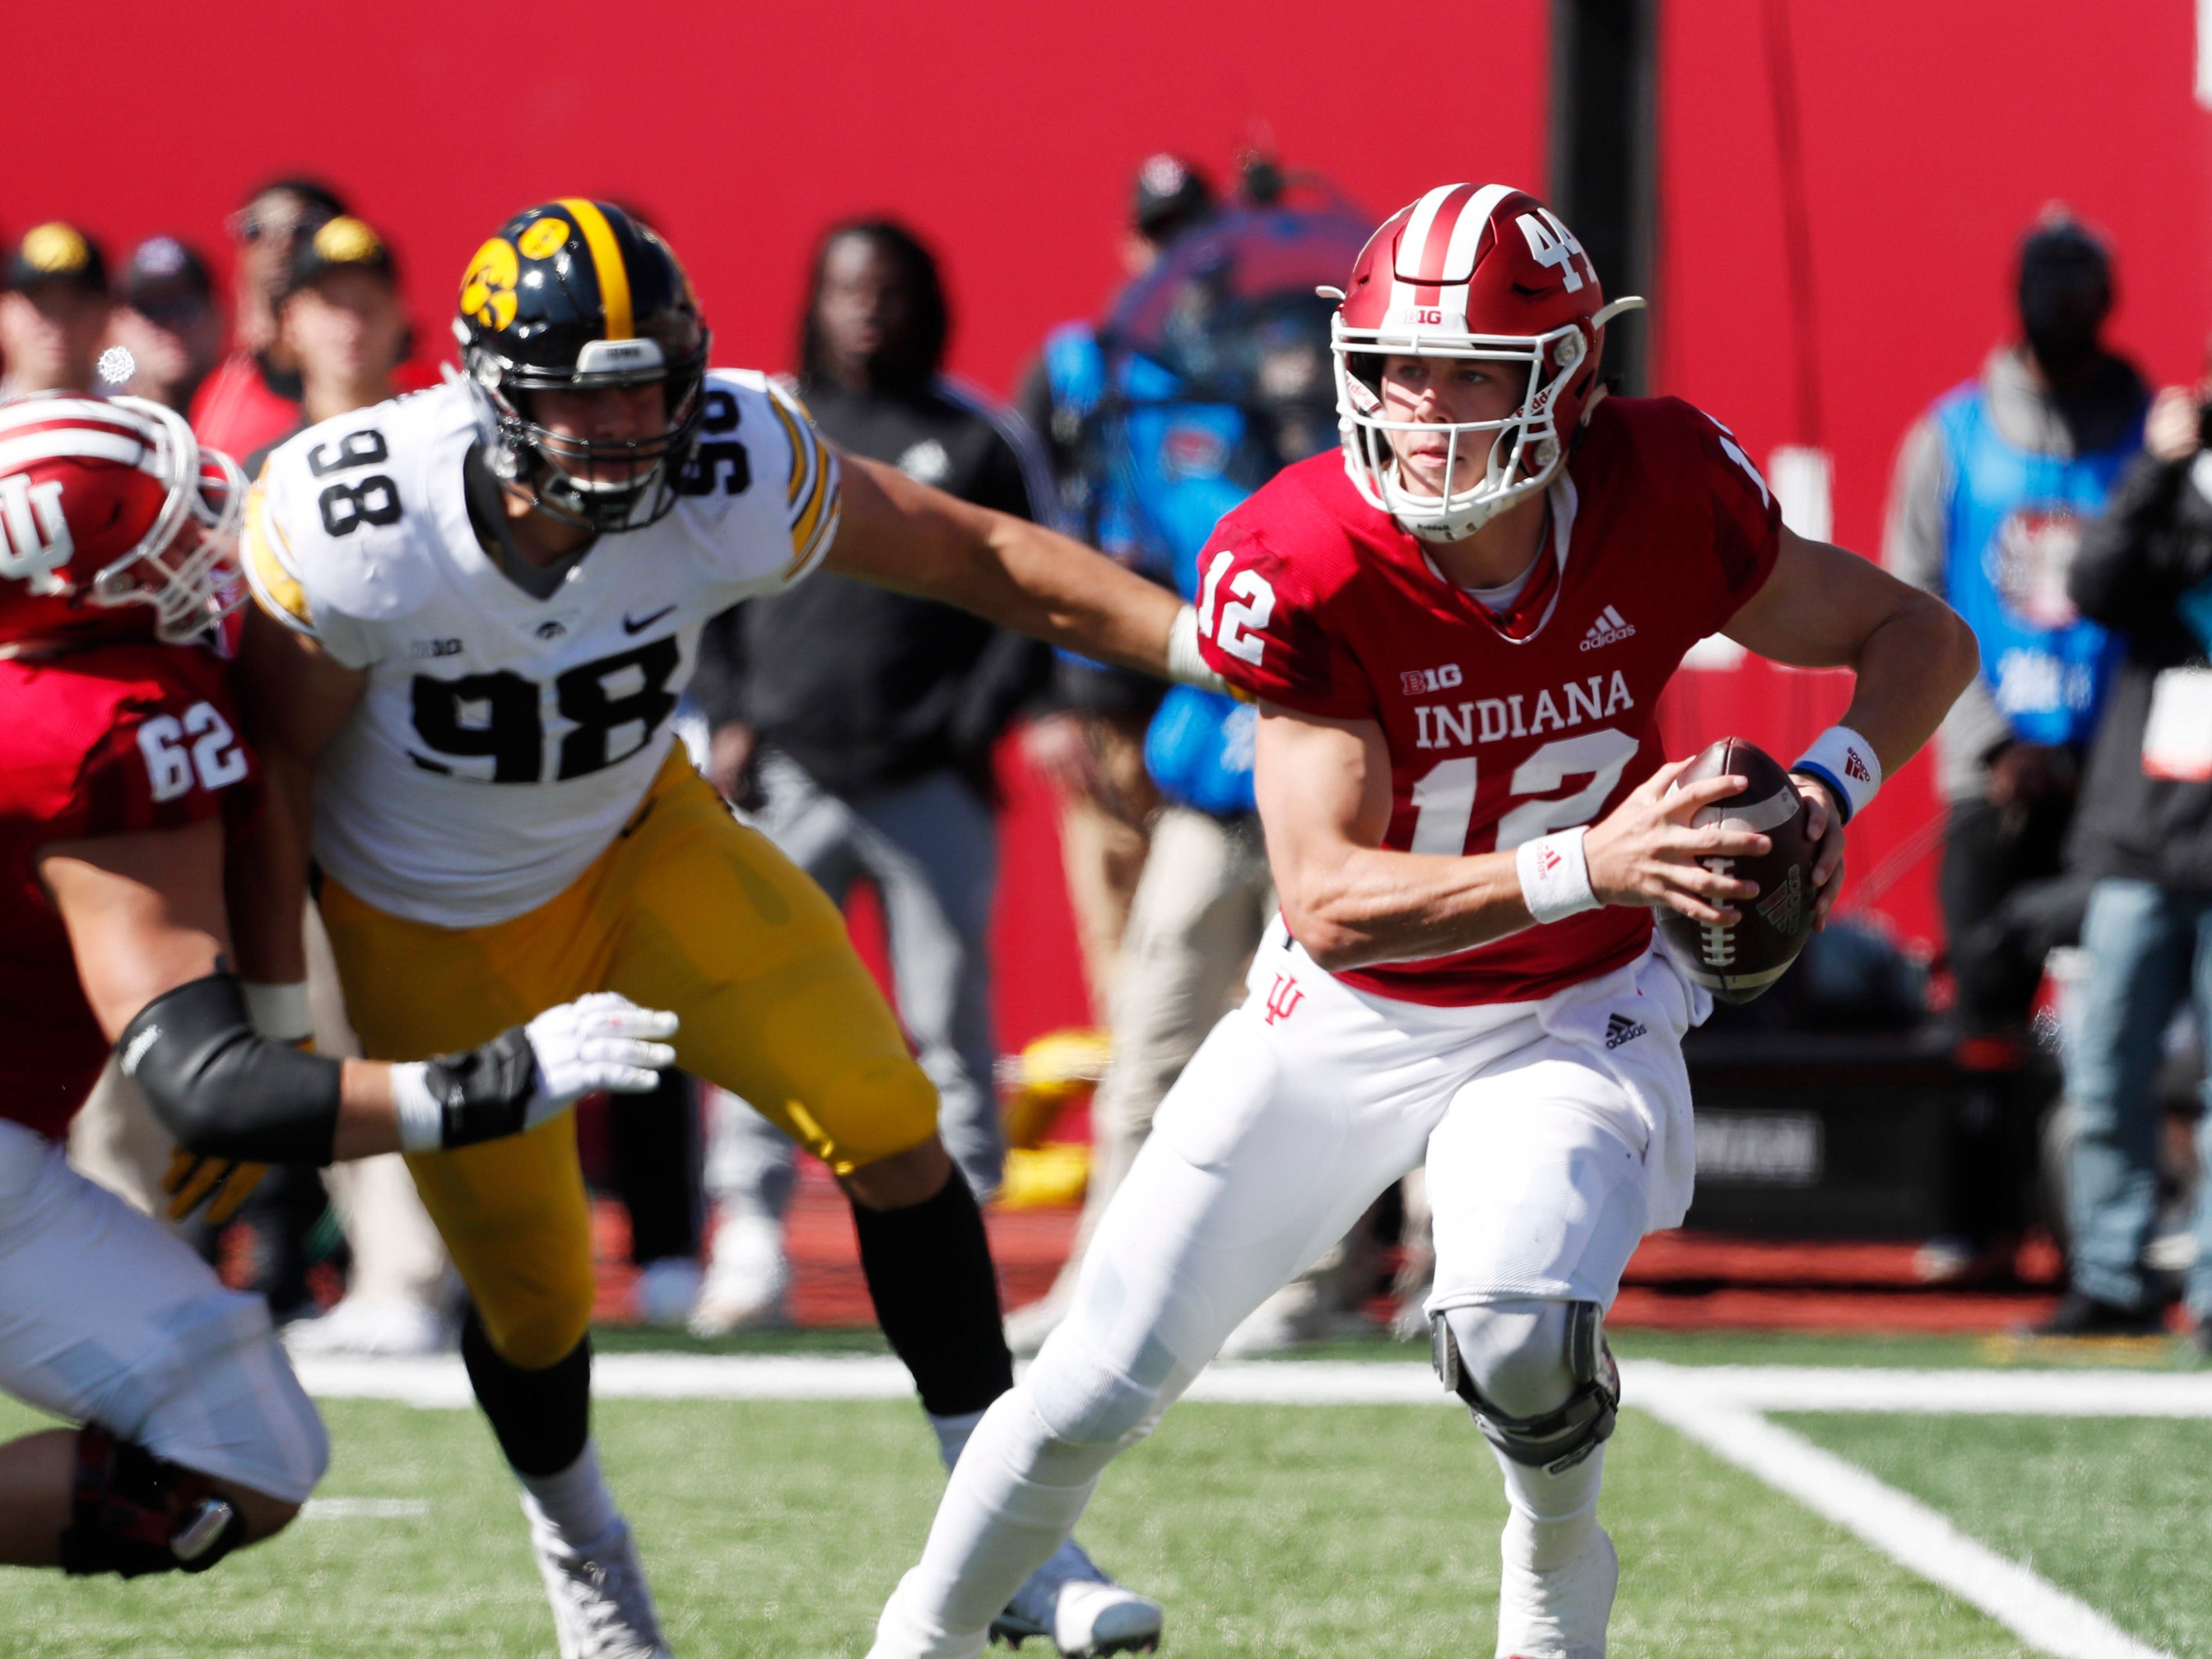 Indiana Hoosiers quarterback Peyton Ramsey (12) rolls out to throw a pass against the Iowa Hawkeyes during the first quarter at Memorial Stadium .